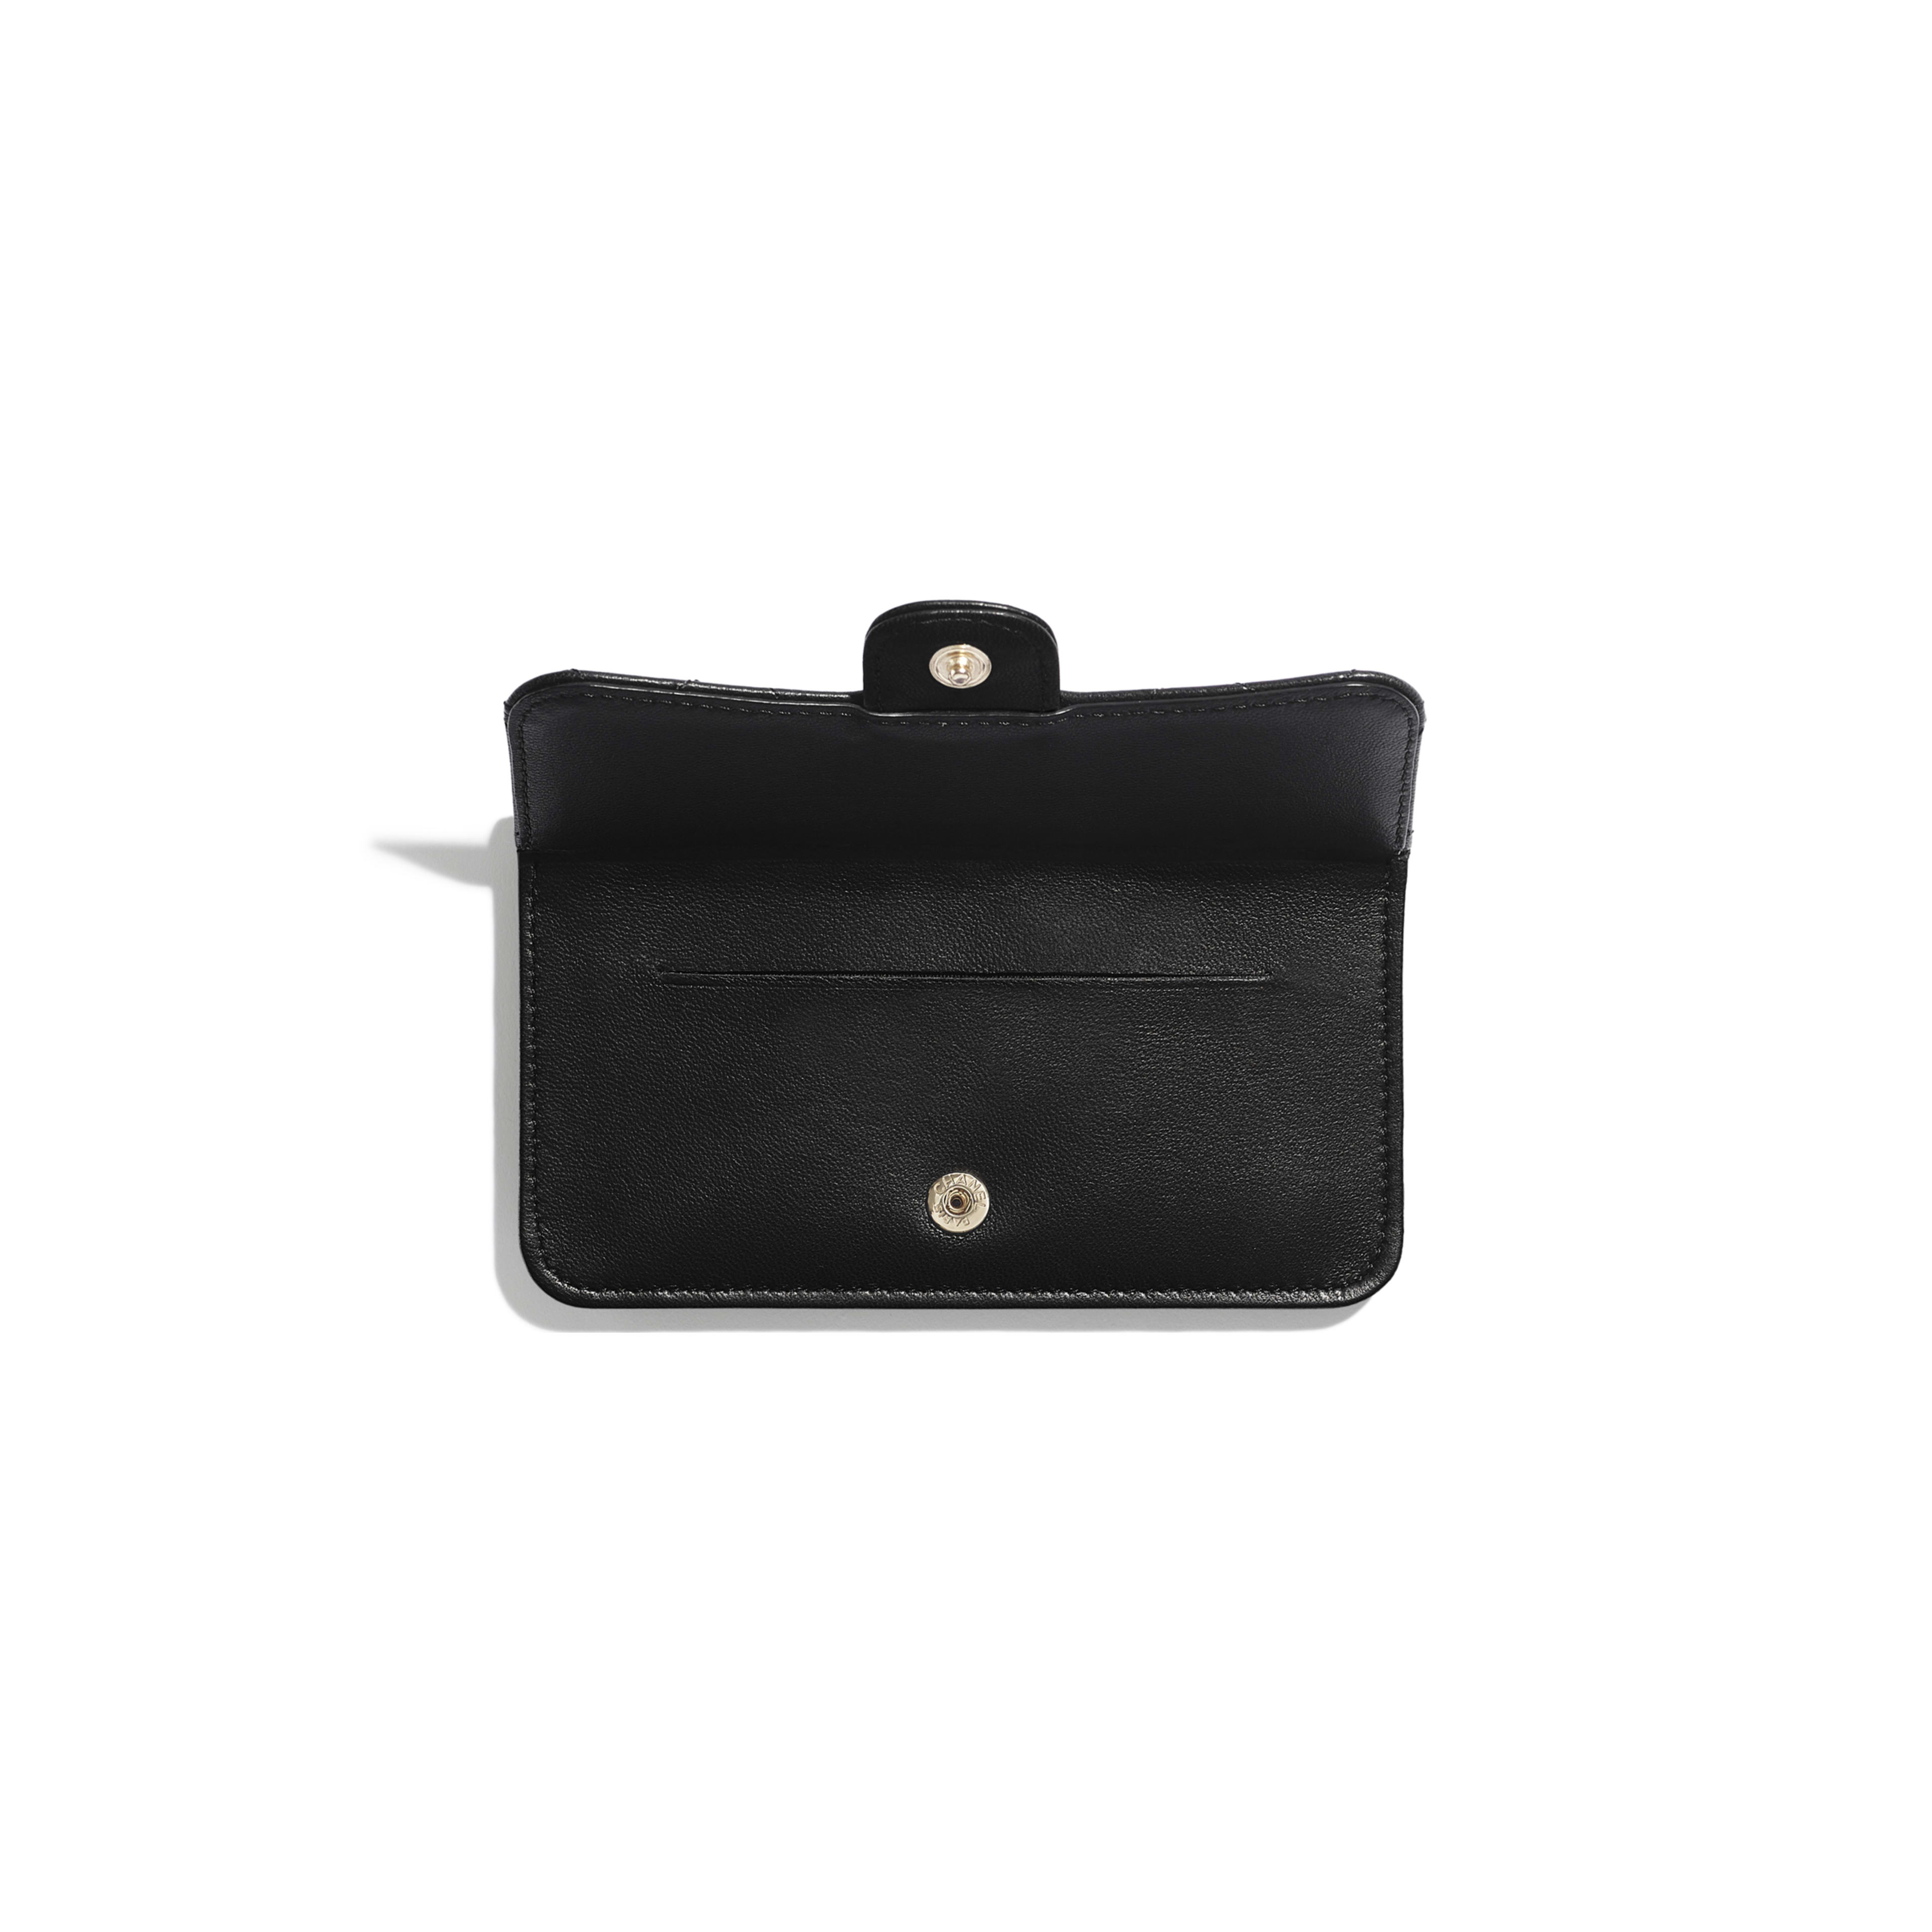 Classic Card Holder - Black - Lambskin & Gold-Tone Metal - Other view - see full sized version